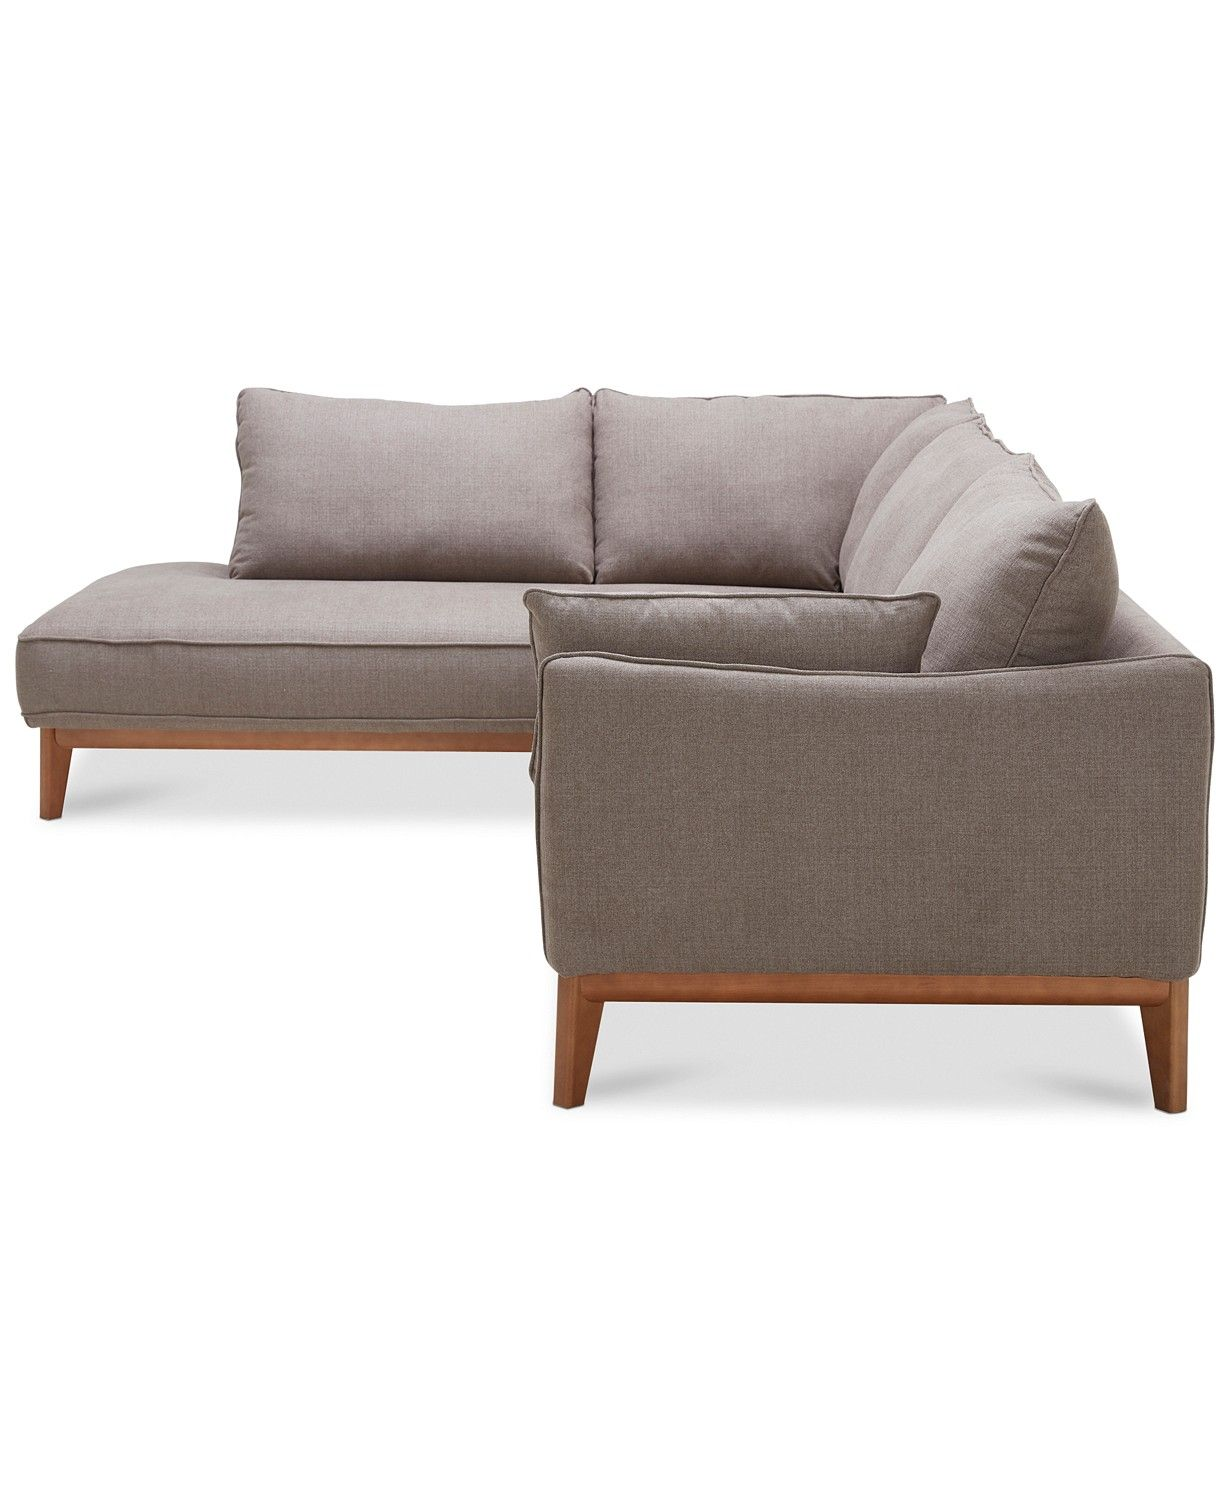 Furniture Jollene 113 Small Sectional Sofa Furniture Couch